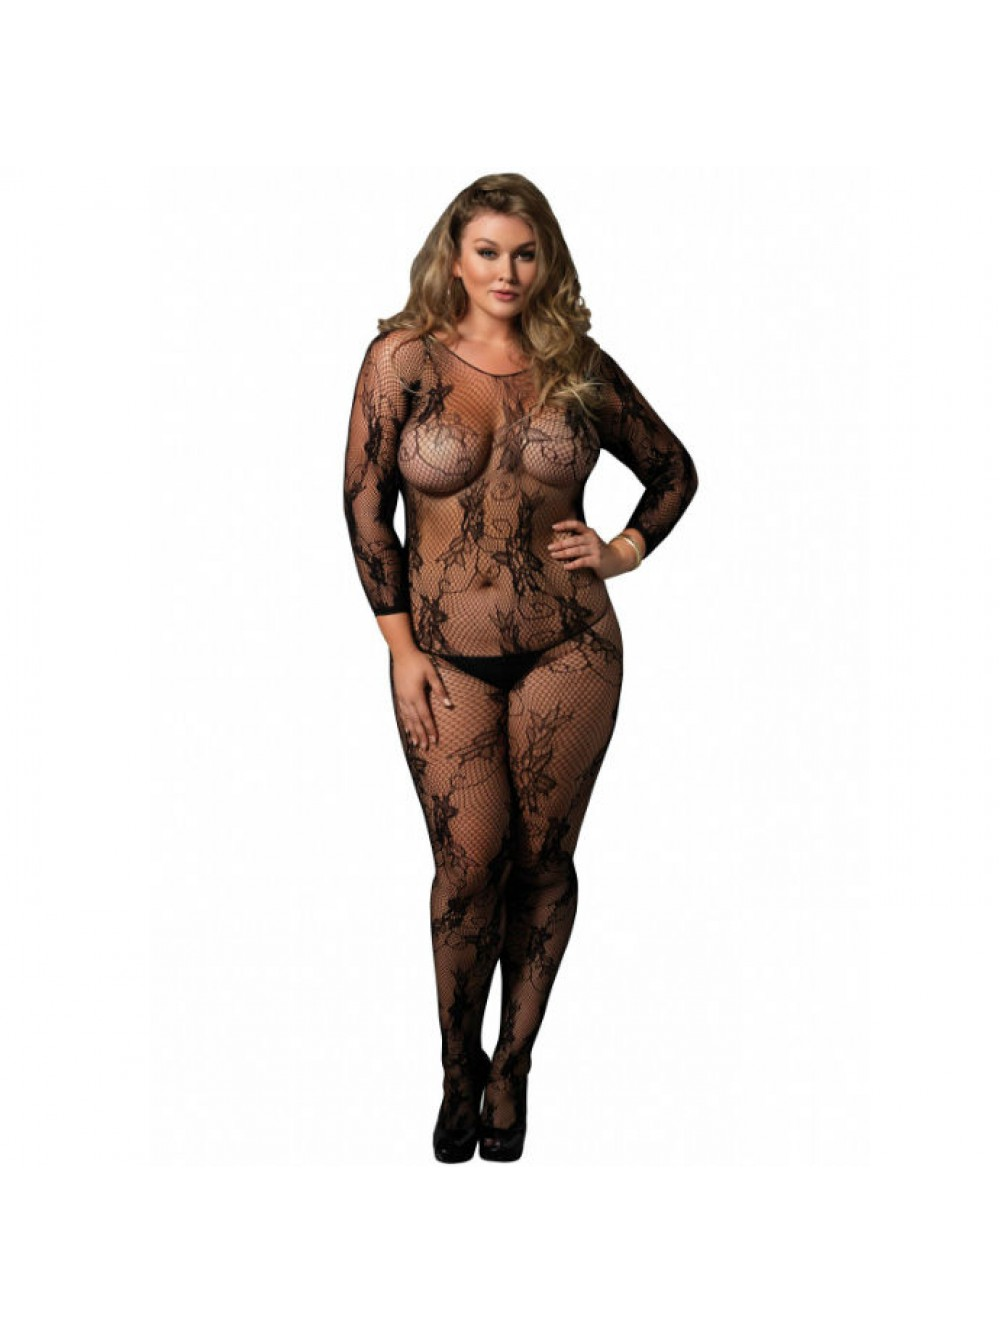 LEG AVENUE FLORAL LACE BODYSTOCKING PLUS SIZE